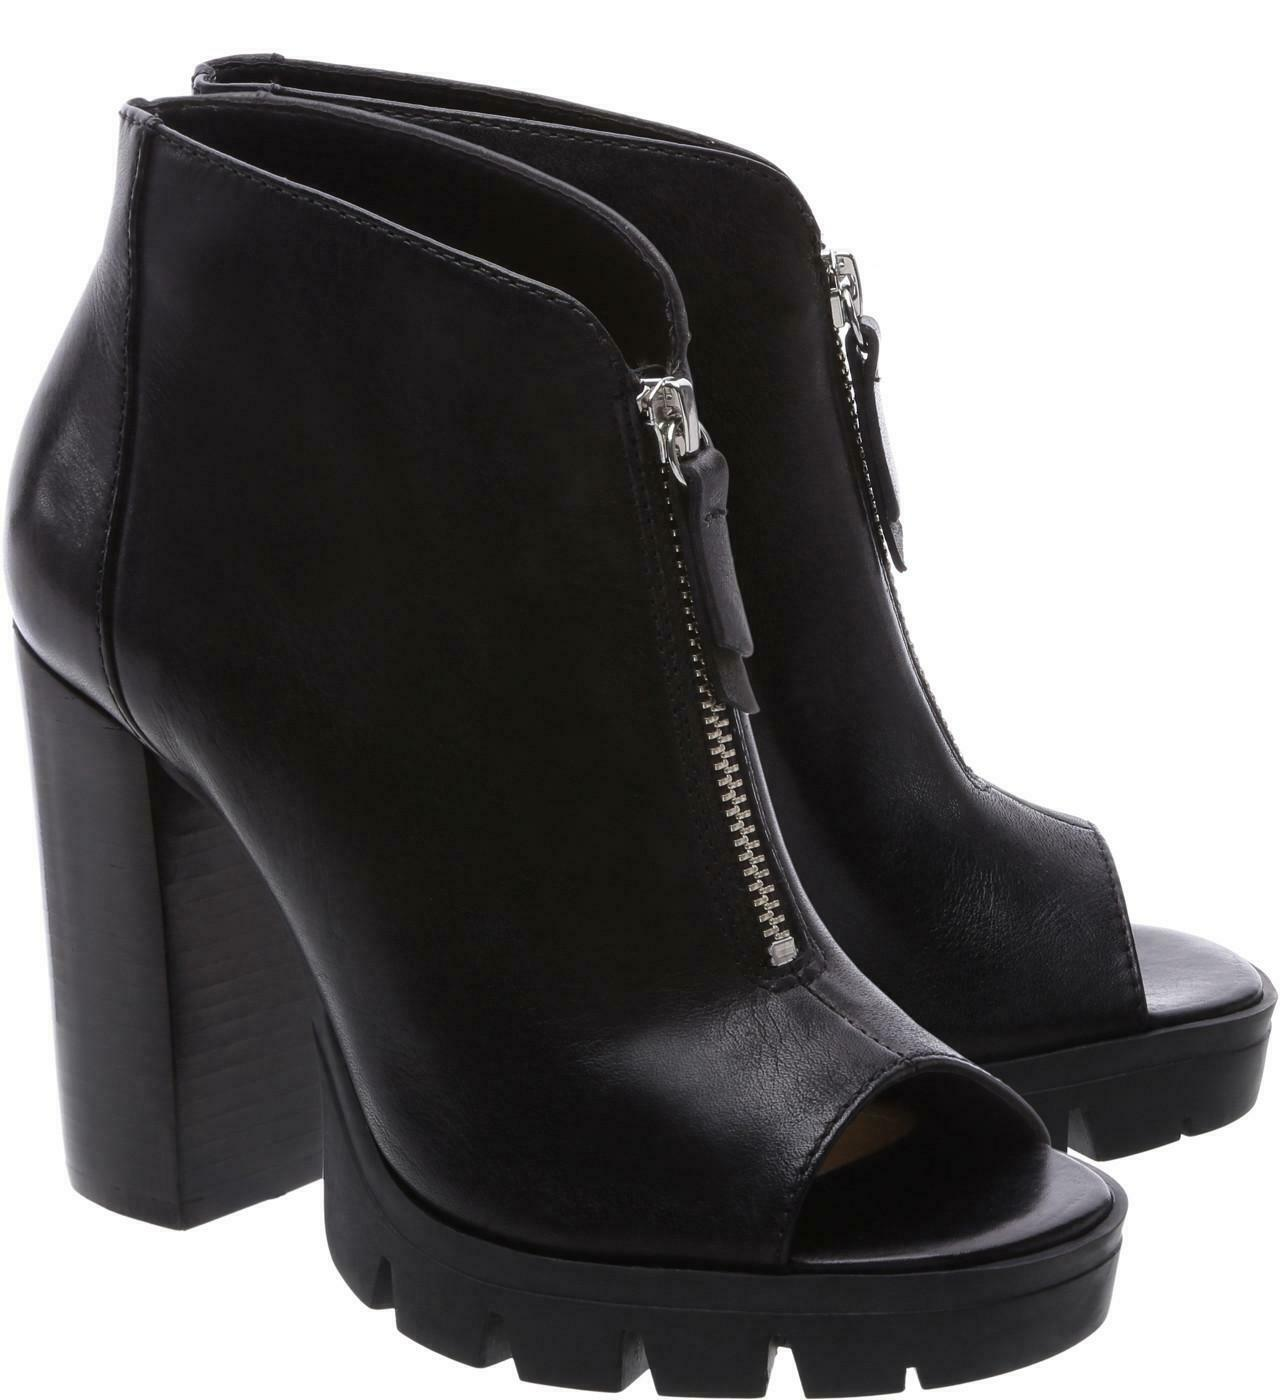 Schutz Womens Black Juliette High heel peep-toe PLatform bootie treaded Lug sole